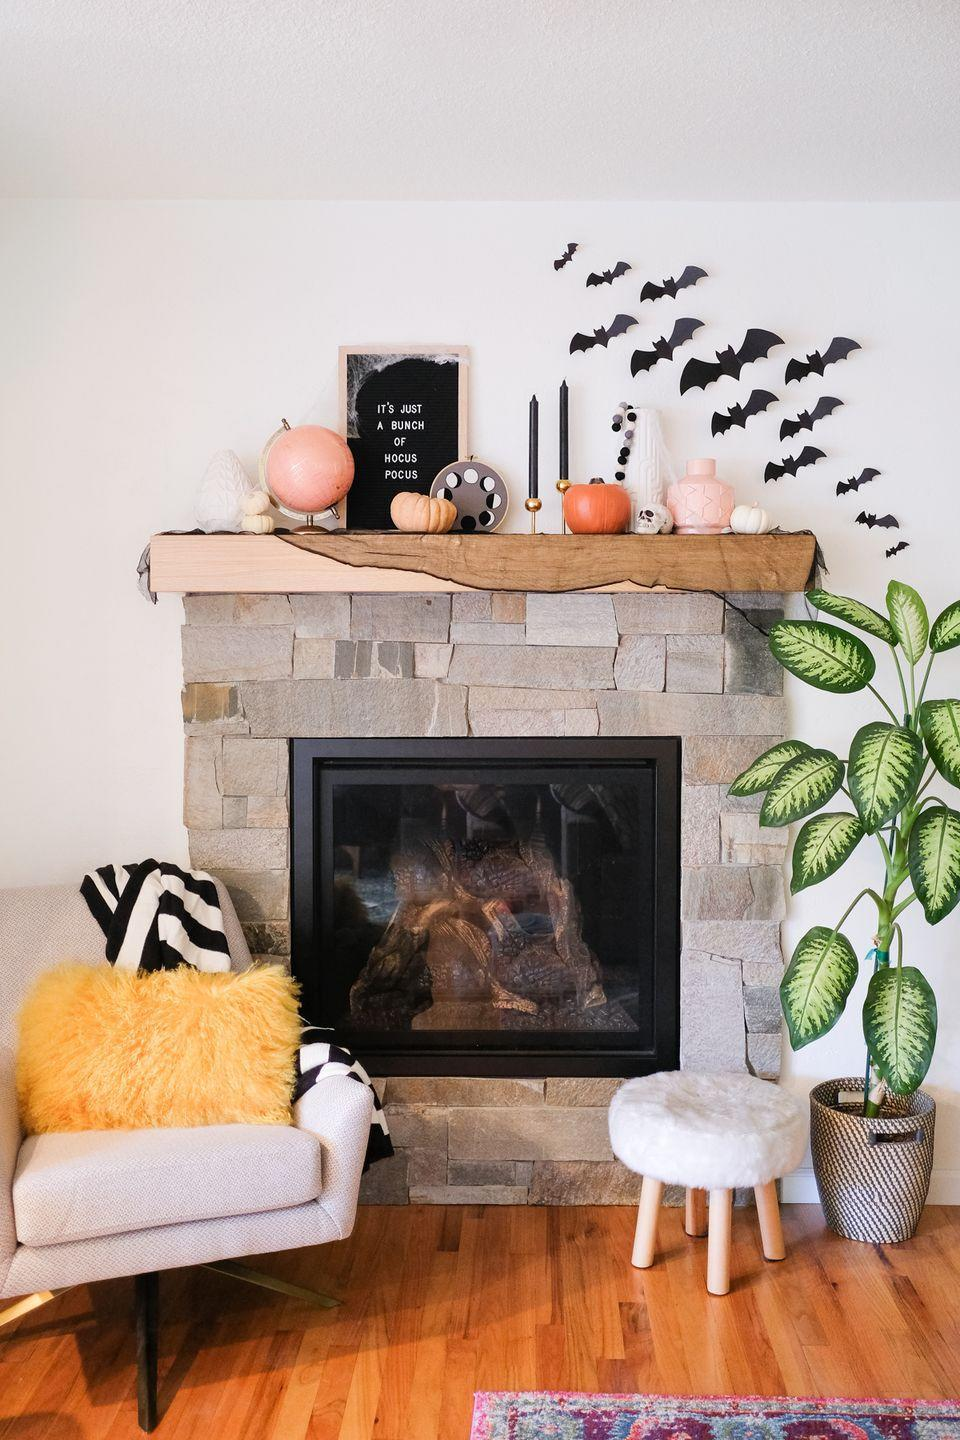 """<p>You don't need to invest much in new Halloween decor in order to create a festive, spooky look. Just dig into items you already have on hand — like candlesticks, fabric, bowls and books in a Halloween color palette — and <em>zhush</em> up the look with dollar store cobwebs and these multipurpose bat printables.</p><p><em><a href=""""https://lovelyindeed.com/halloween-home-decor-ideas/"""" rel=""""nofollow noopener"""" target=""""_blank"""" data-ylk=""""slk:Get the printable at Lovely Indeed »"""" class=""""link rapid-noclick-resp"""">Get the printable at Lovely Indeed »</a></em></p>"""